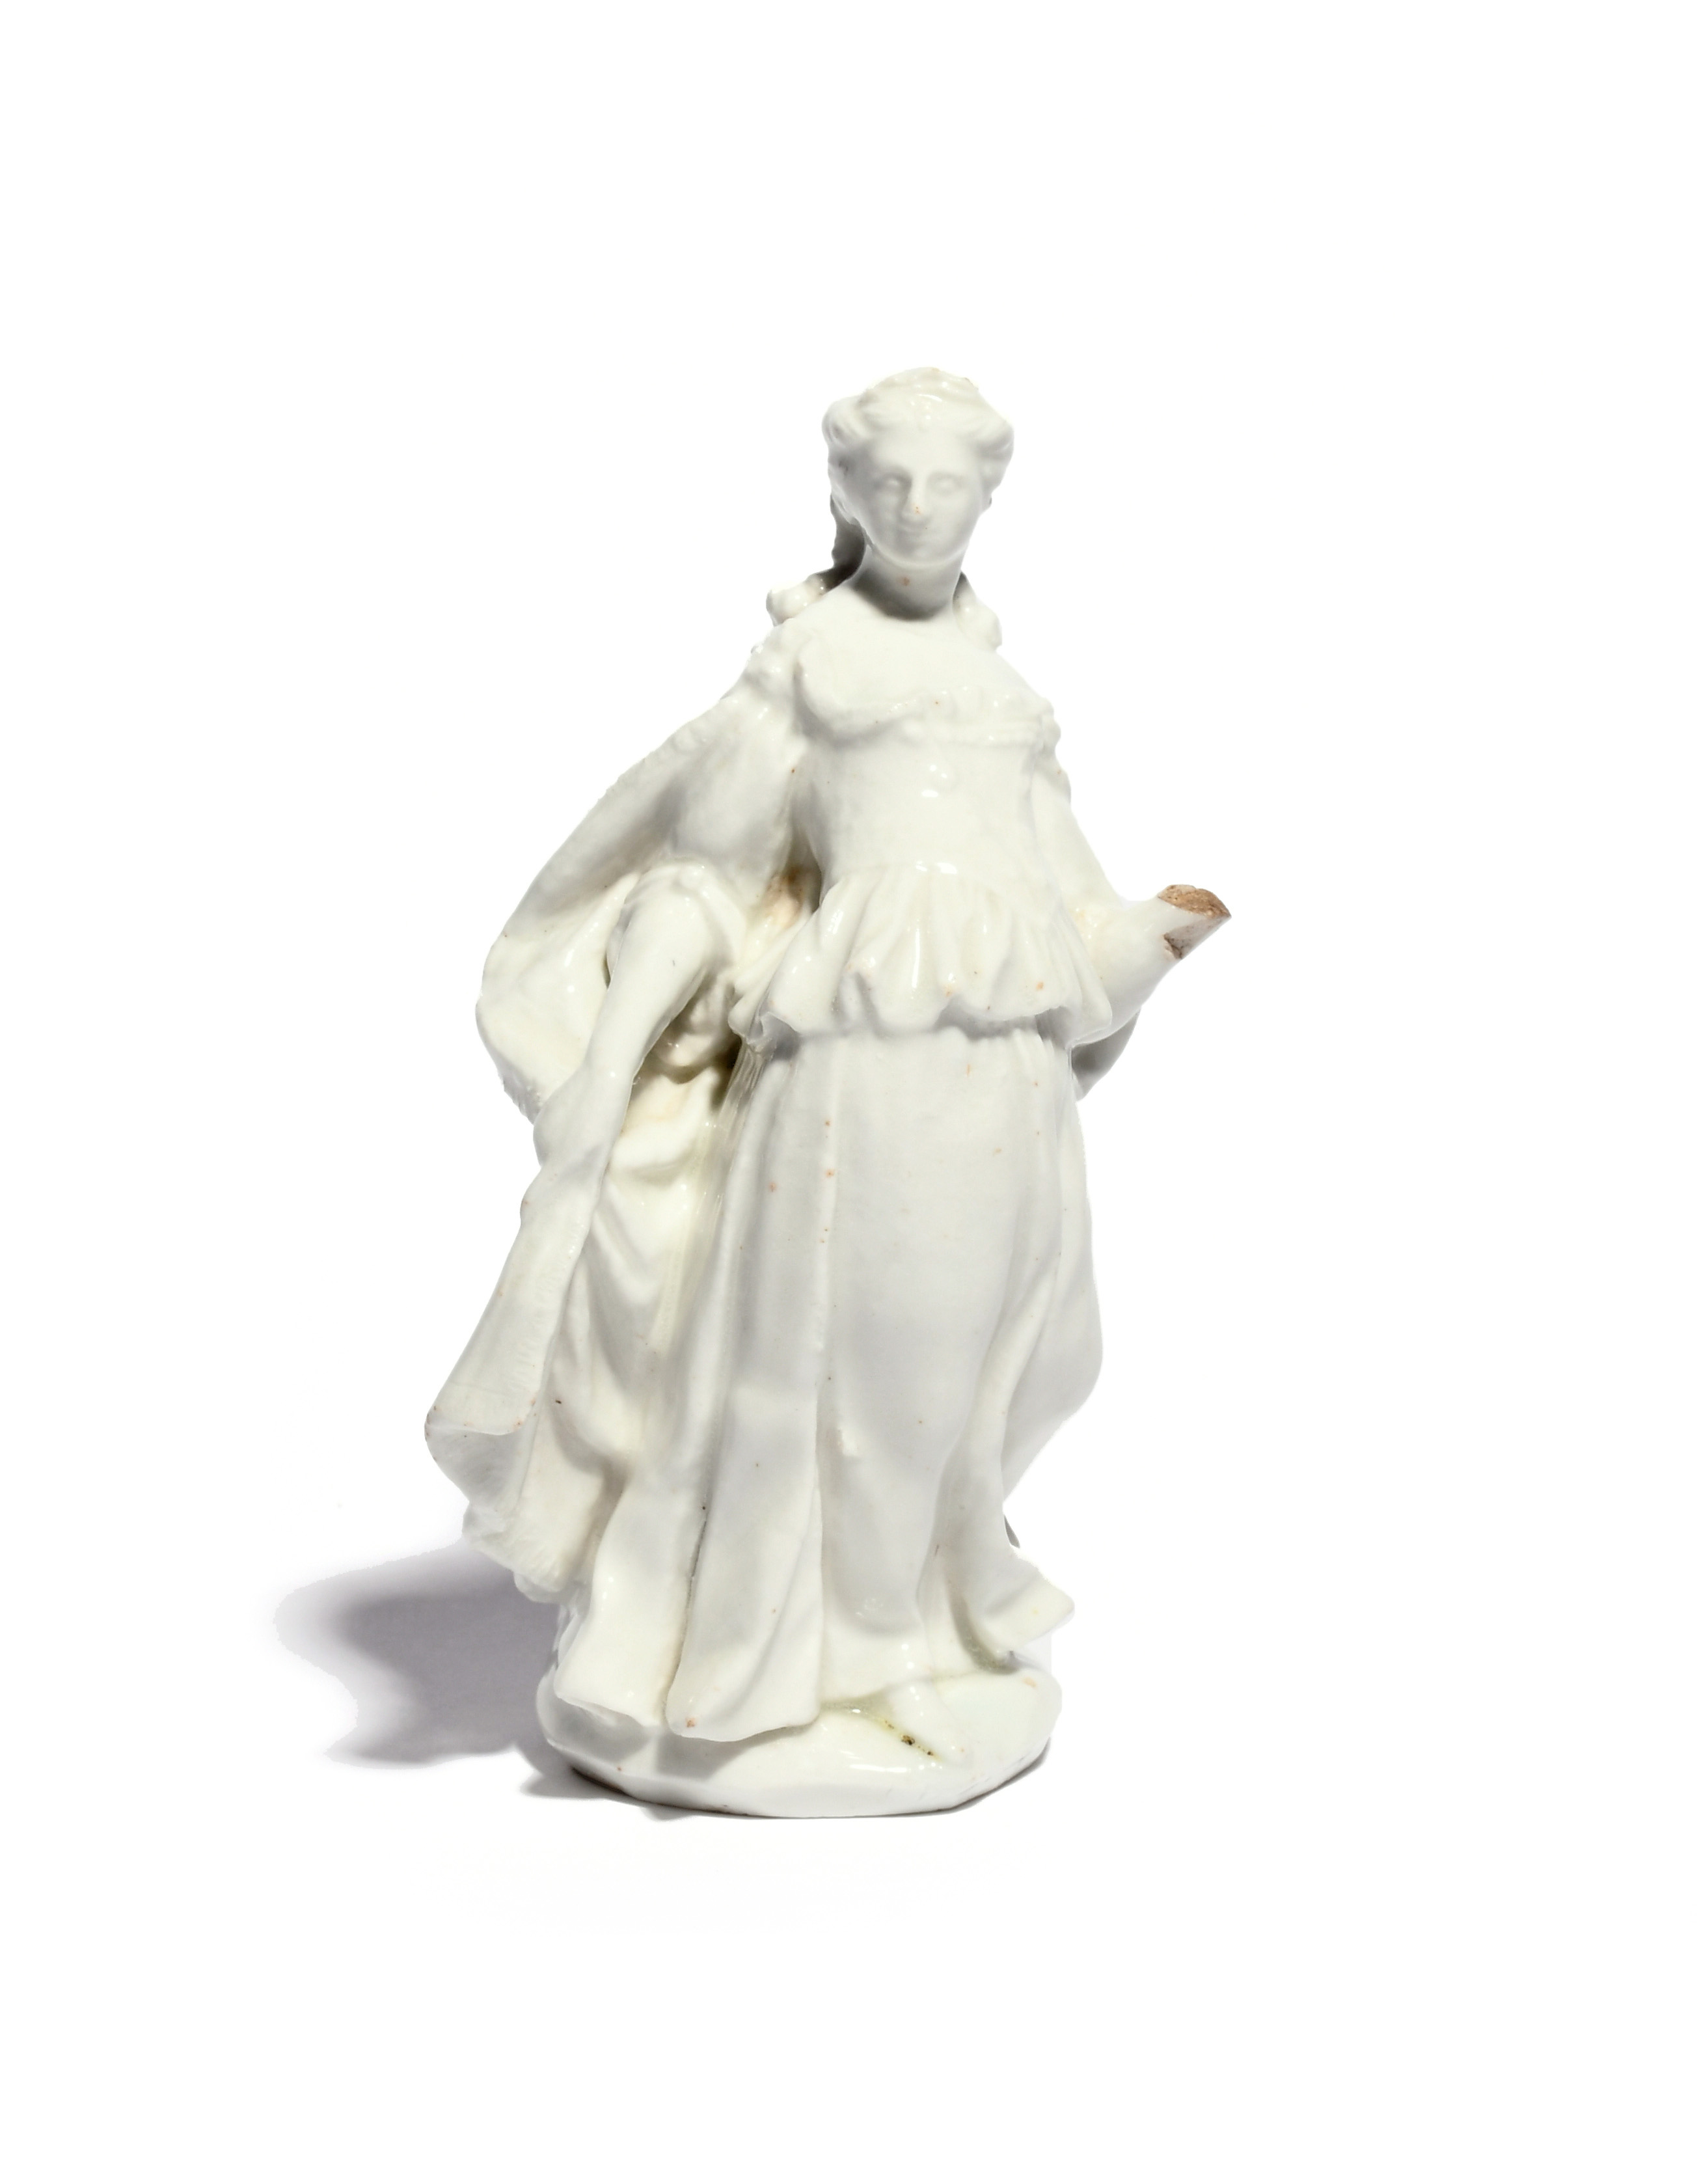 A white-glazed Bow Commedia dell'Arte figure of Isabella c.1752-55, standing in a theatrical pose